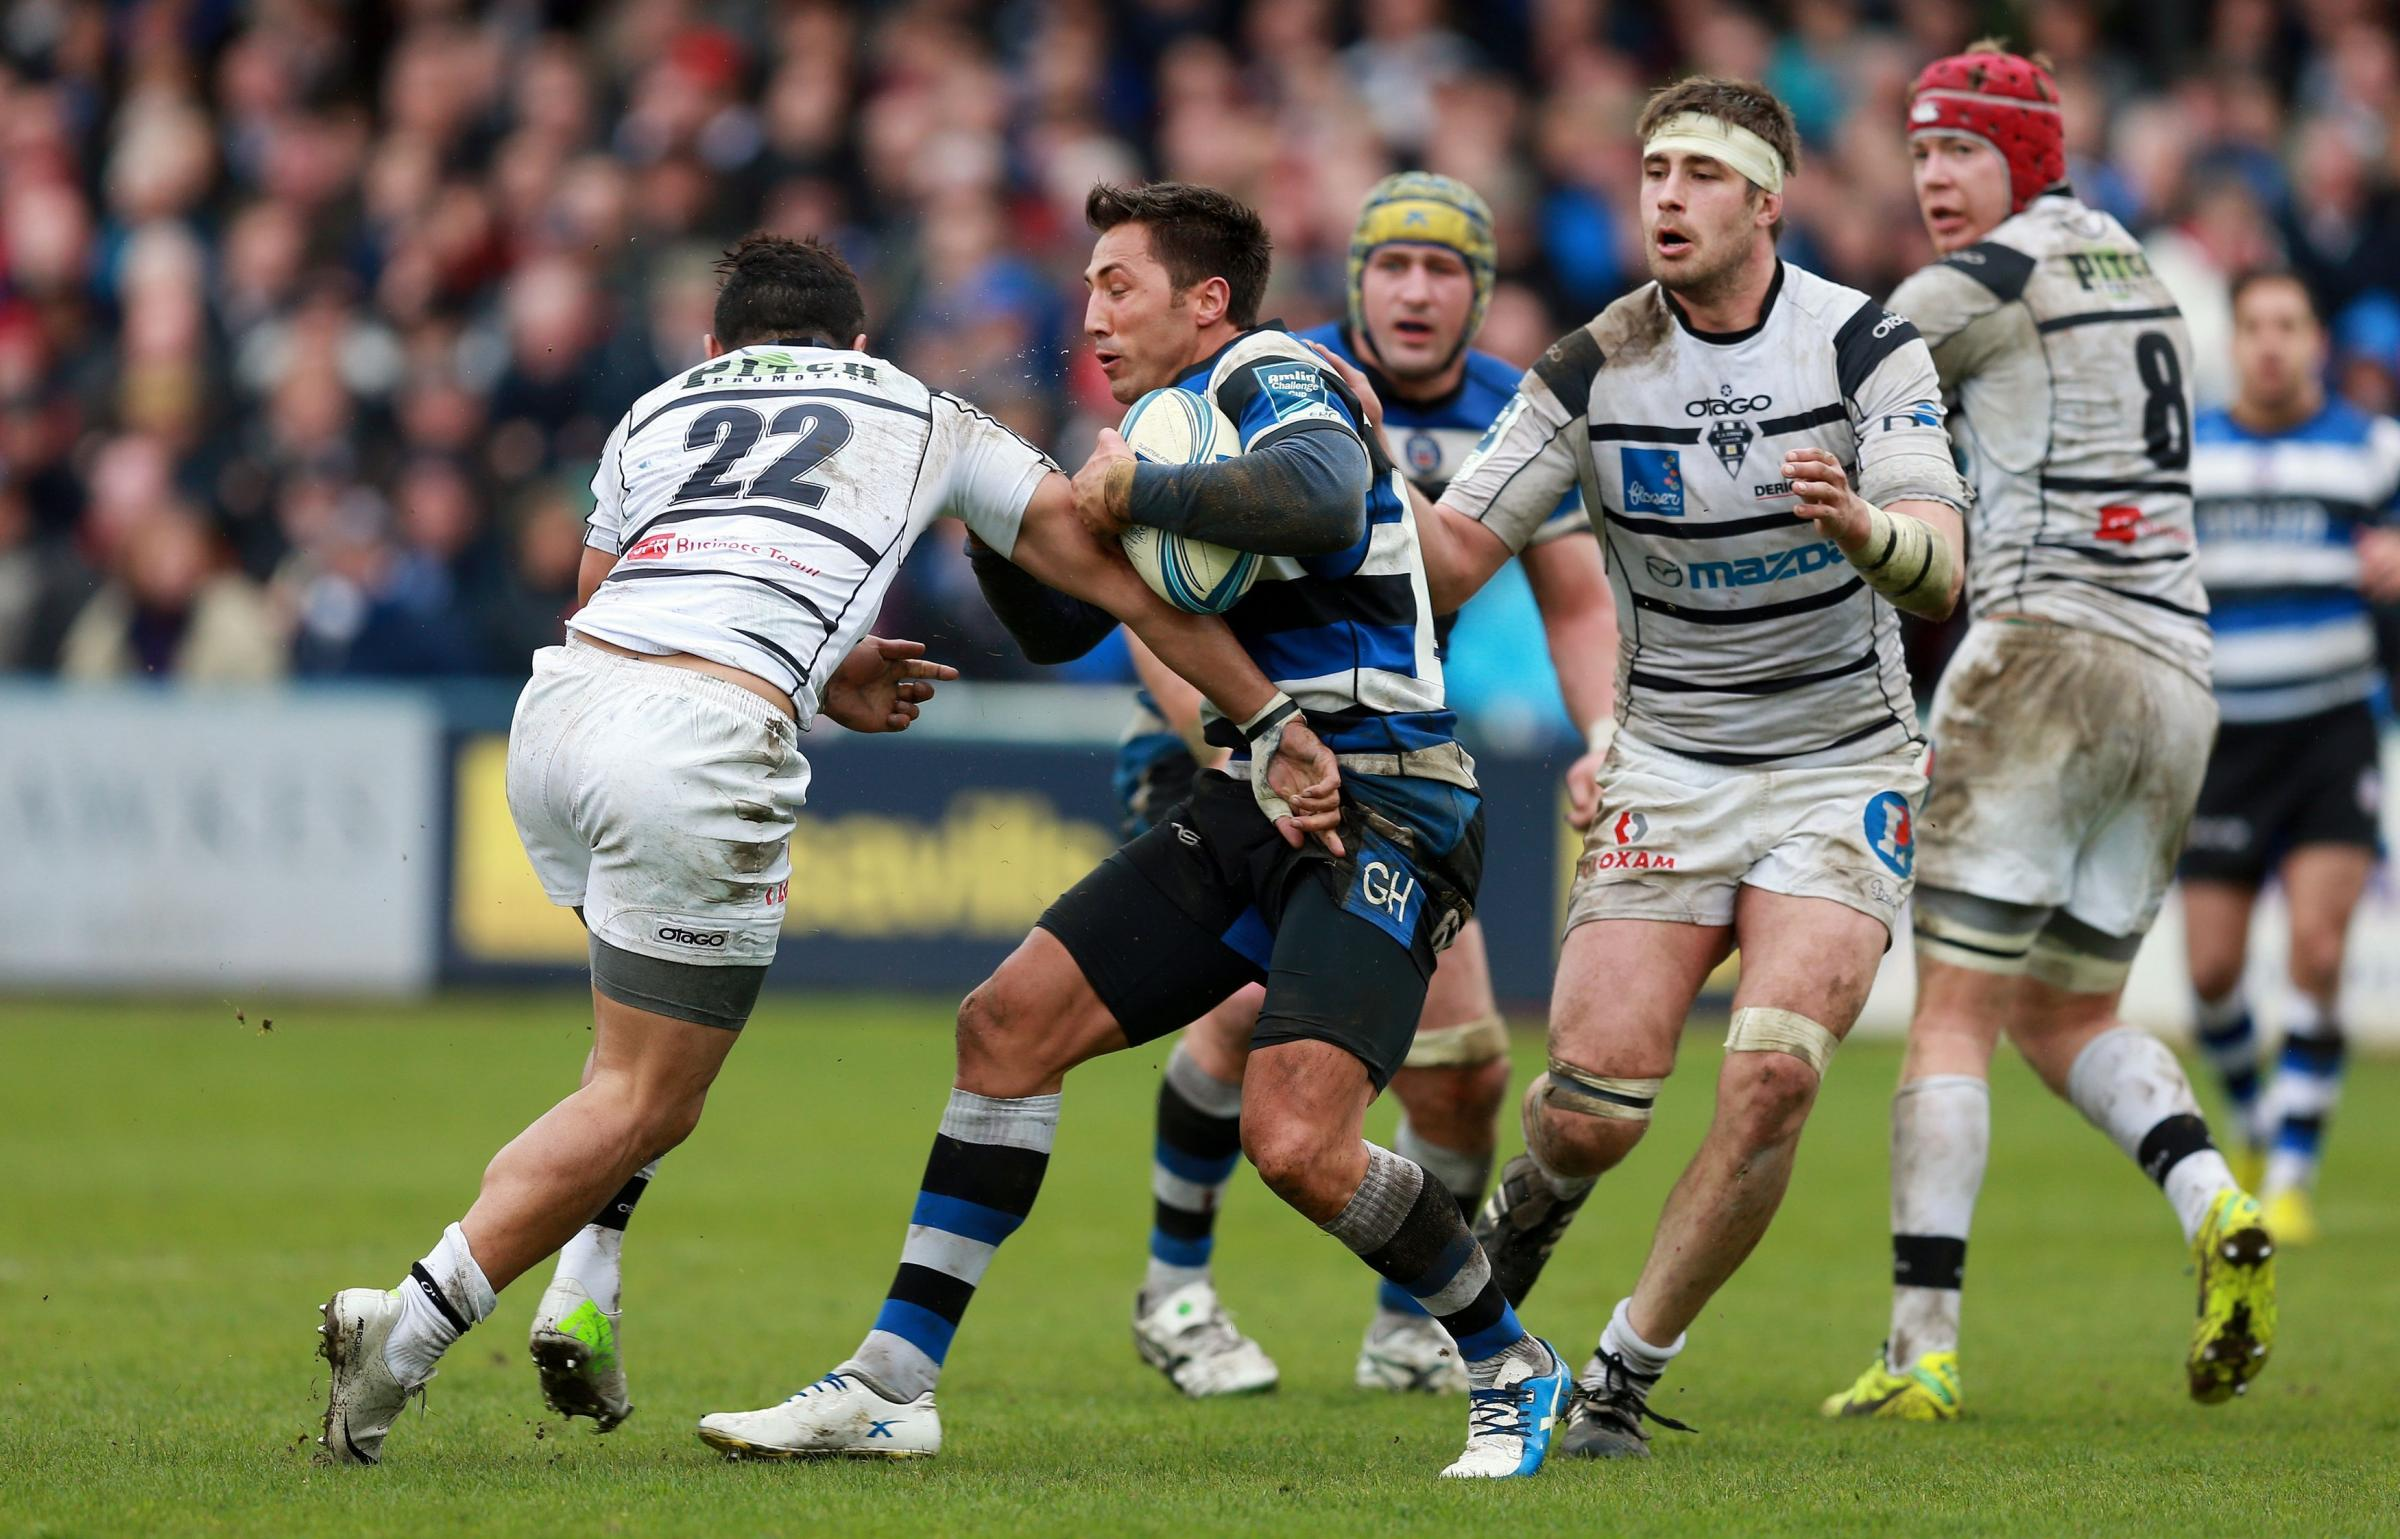 STAYING PUT: Former Wales star Gavin Henson will remain at Bath